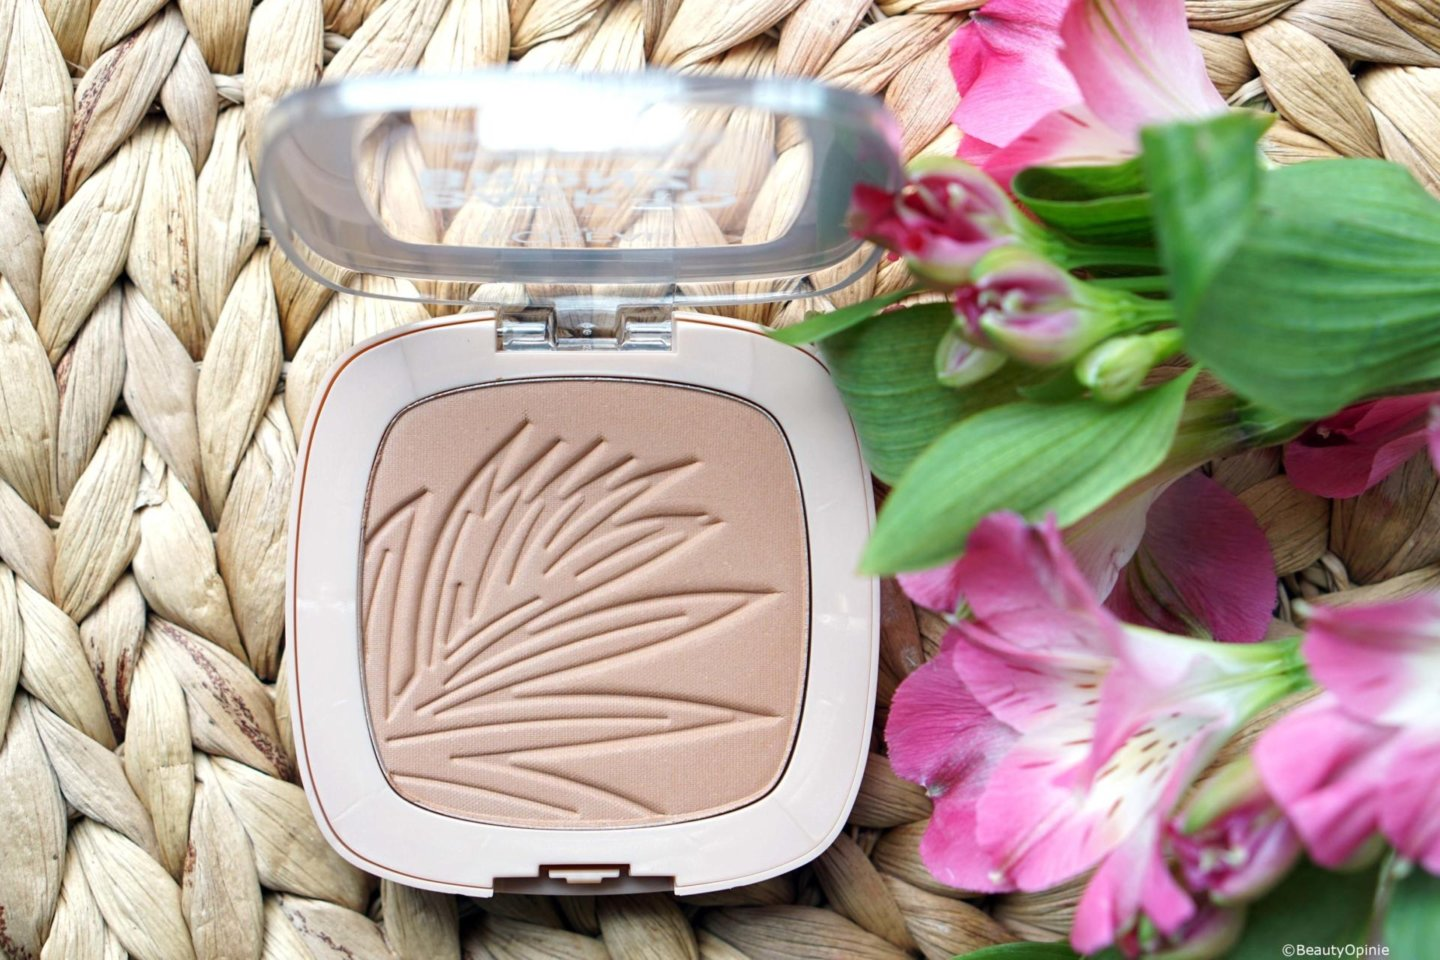 L'Oréal Wake Up & Glow Bronzer swatches